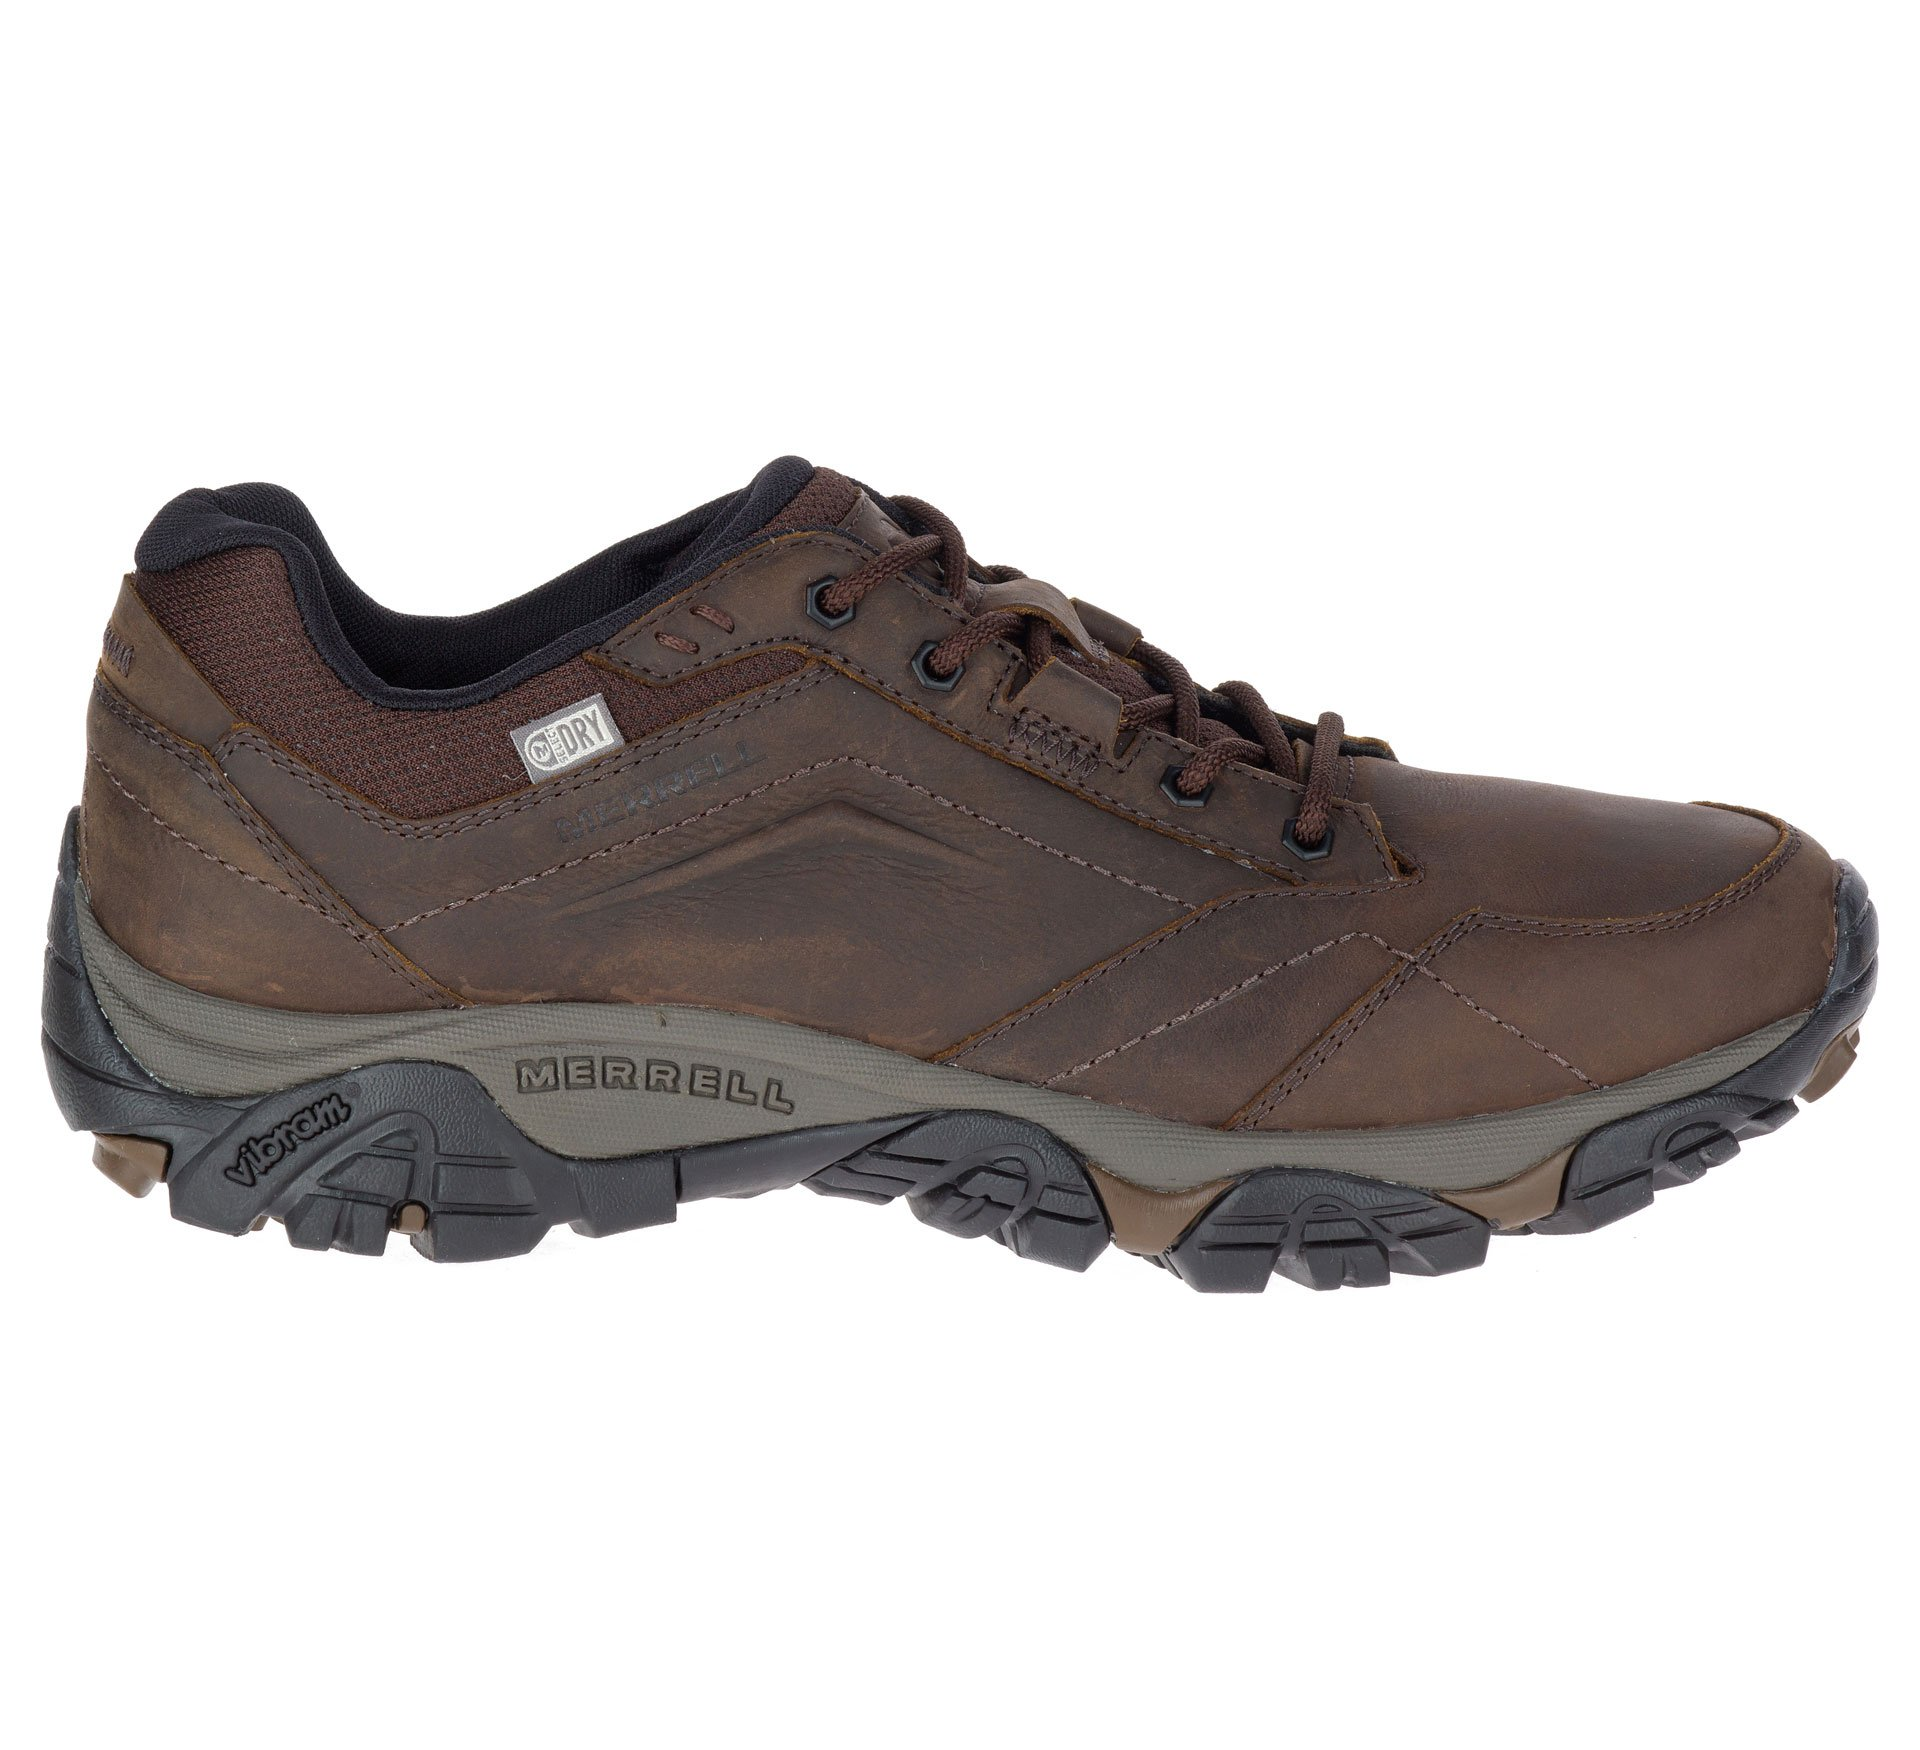 81SmLZmopLL - Merrell Men Moab Adventure Lace Waterproof Hiking Shoes